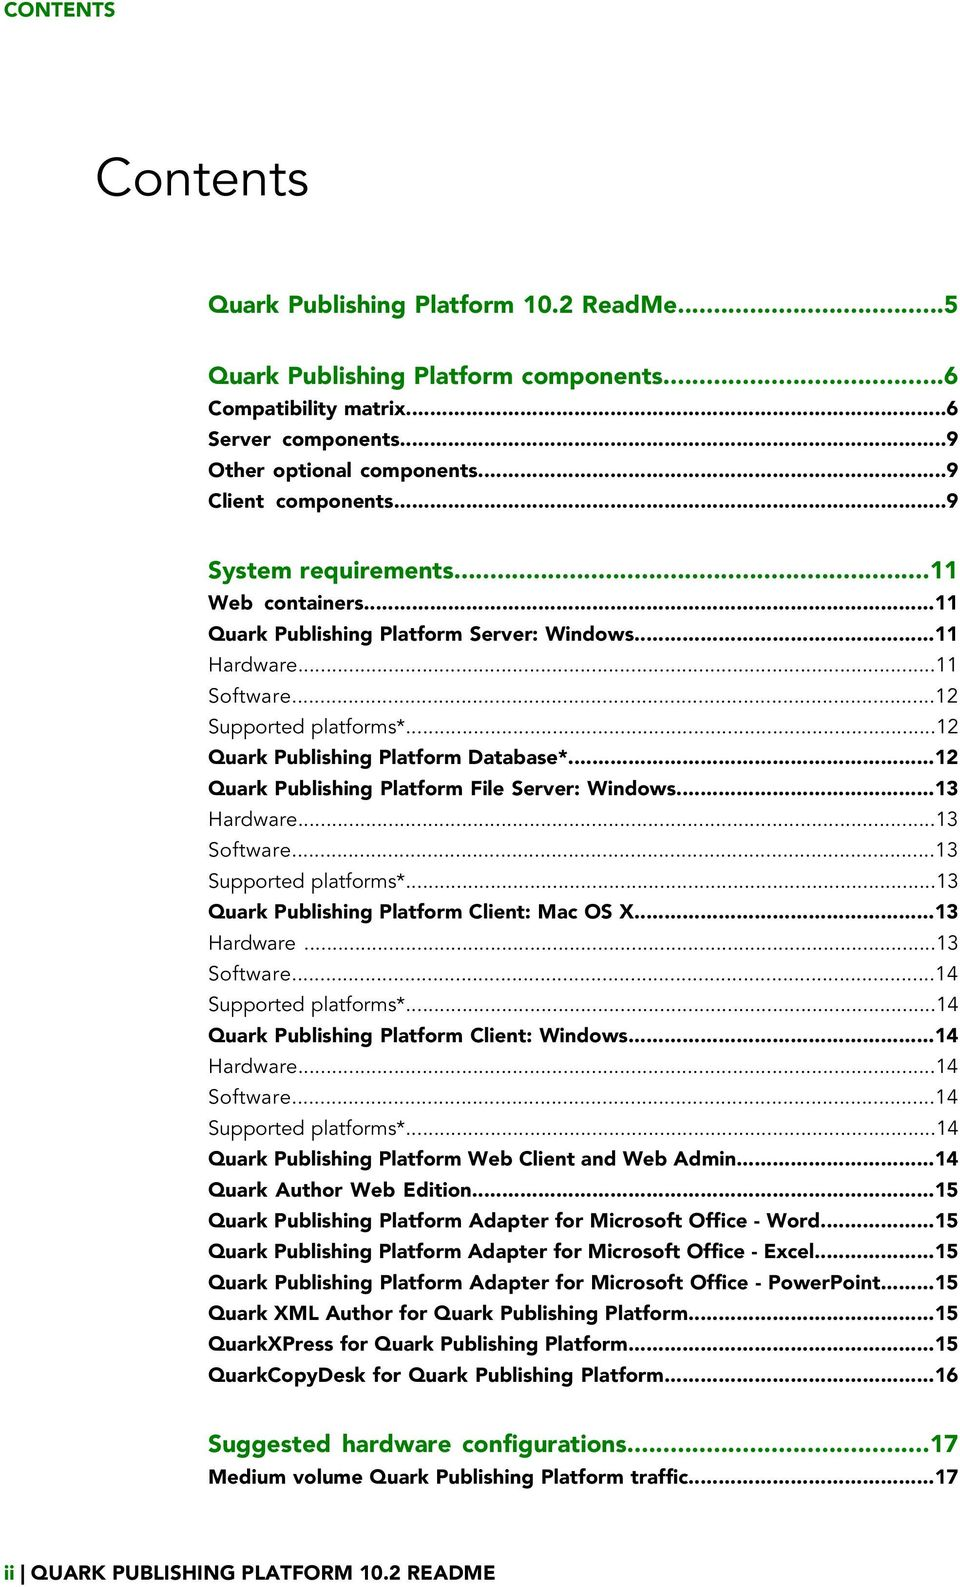 ..12 Quark Publishing Platform File Server: Windows...13 Hardware...13 Software...13 Supported platforms*...13 Quark Publishing Platform Client: Mac OS X...13 Hardware...13 Software...14 Supported platforms*.